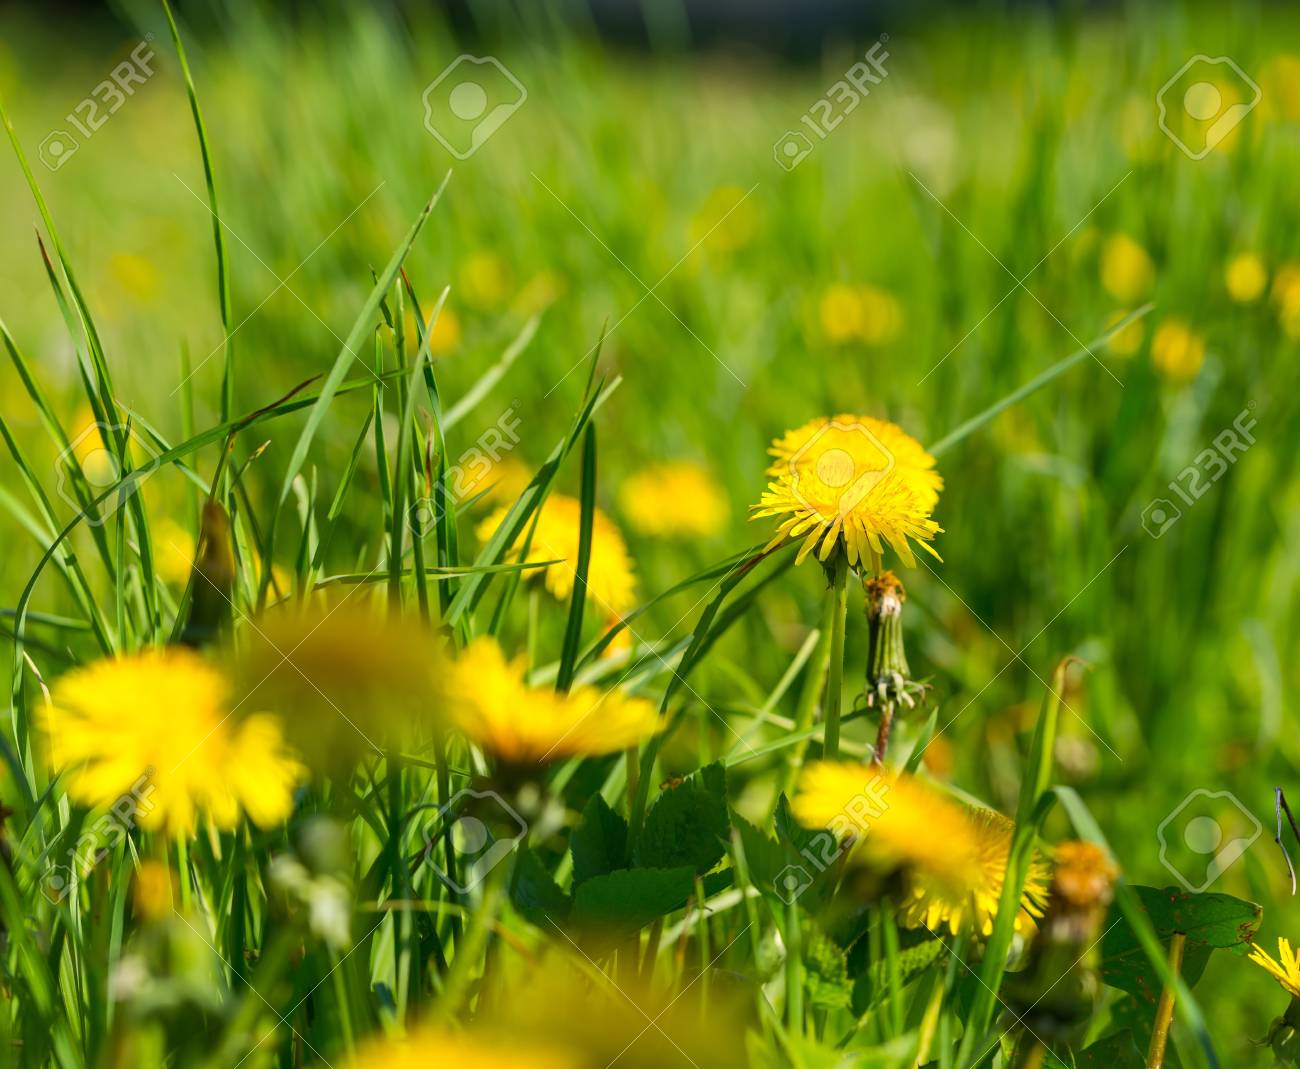 Blooming Dandelion Flowers At Springtime Yellow Flowers Background